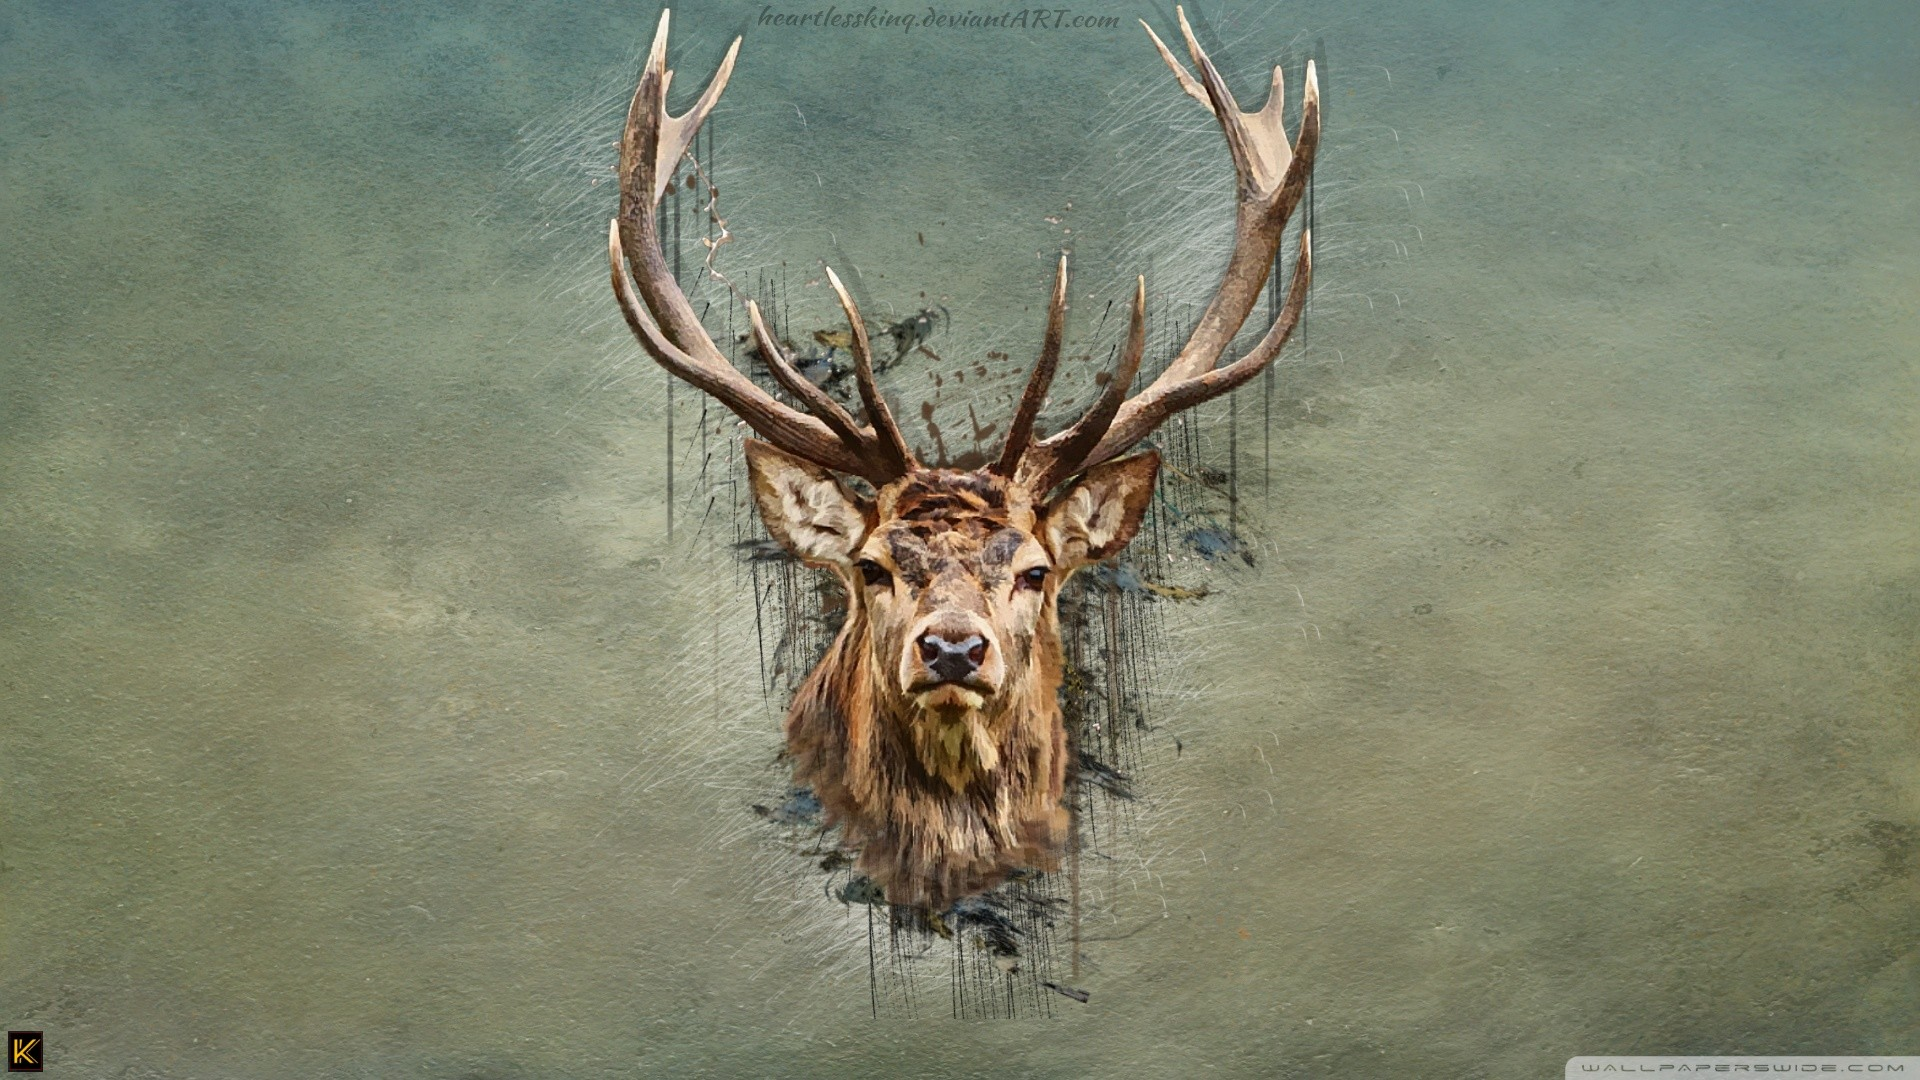 Res: 1920x1080, Deer wallpaper Gallery| Beautiful and Interesting  Images,Vectors,Coloring,Cliparts |Free Hd wallpapers